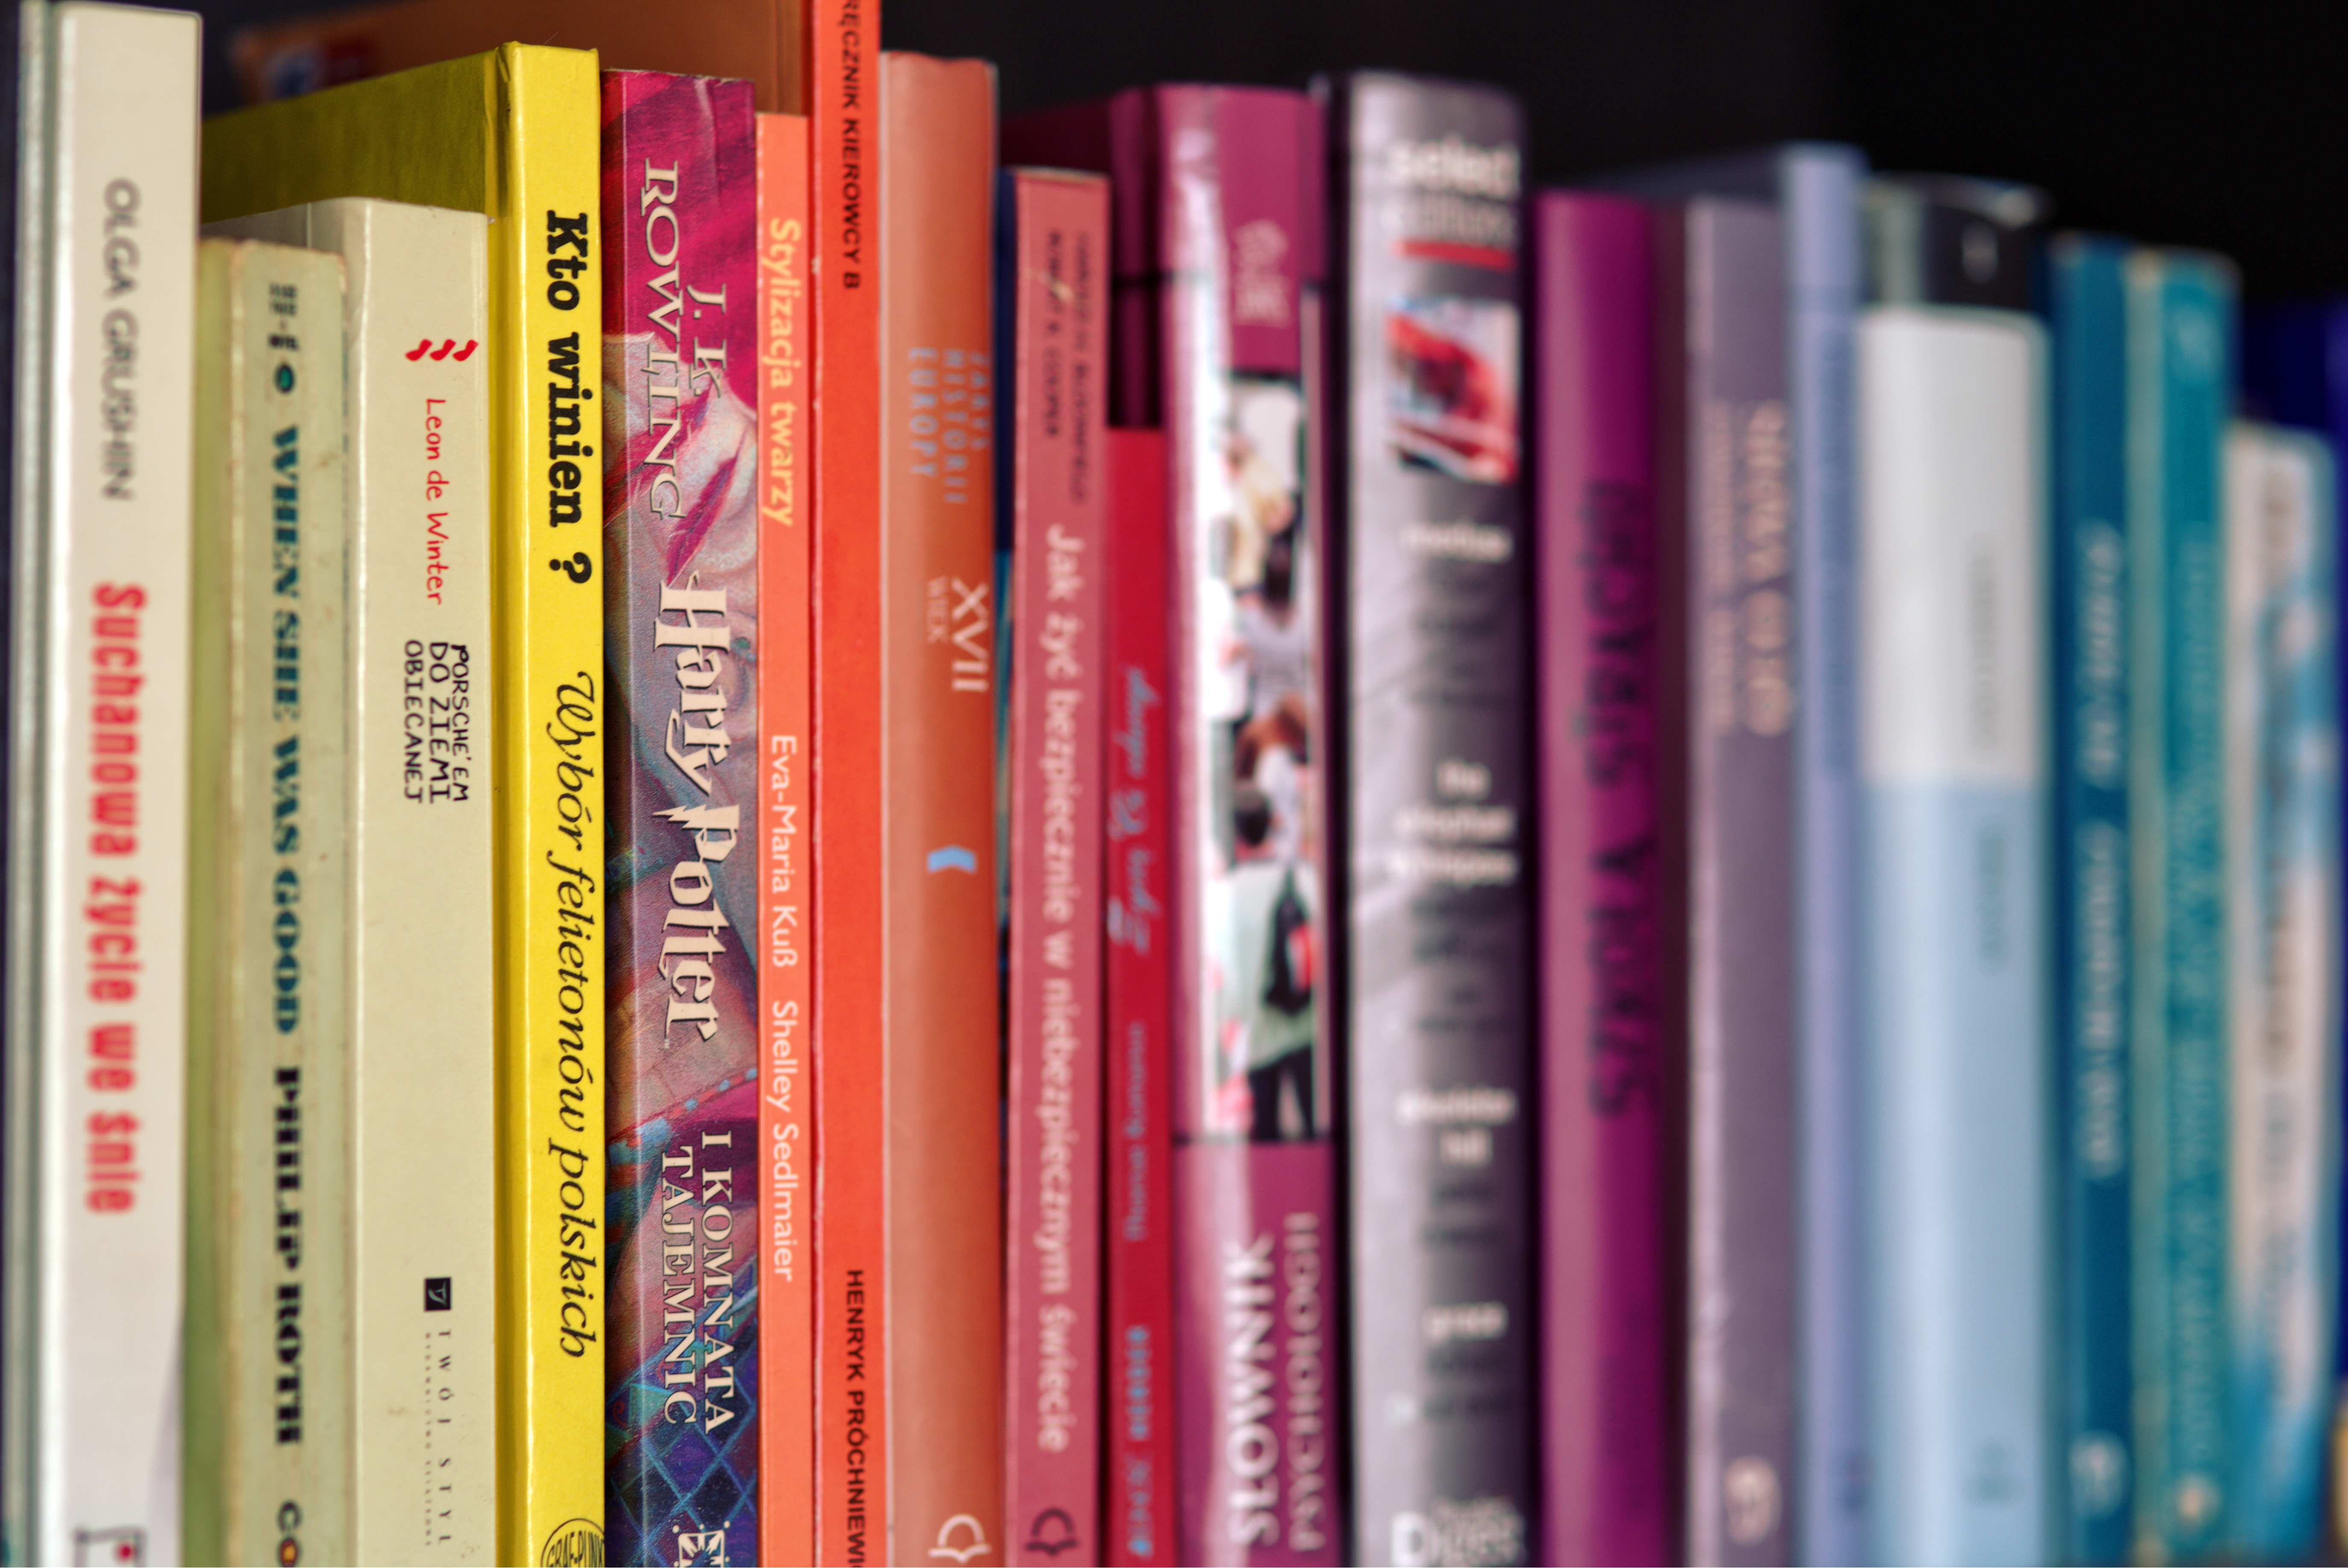 3 -Lecture -books-colorful-harry-potter - PEXELS